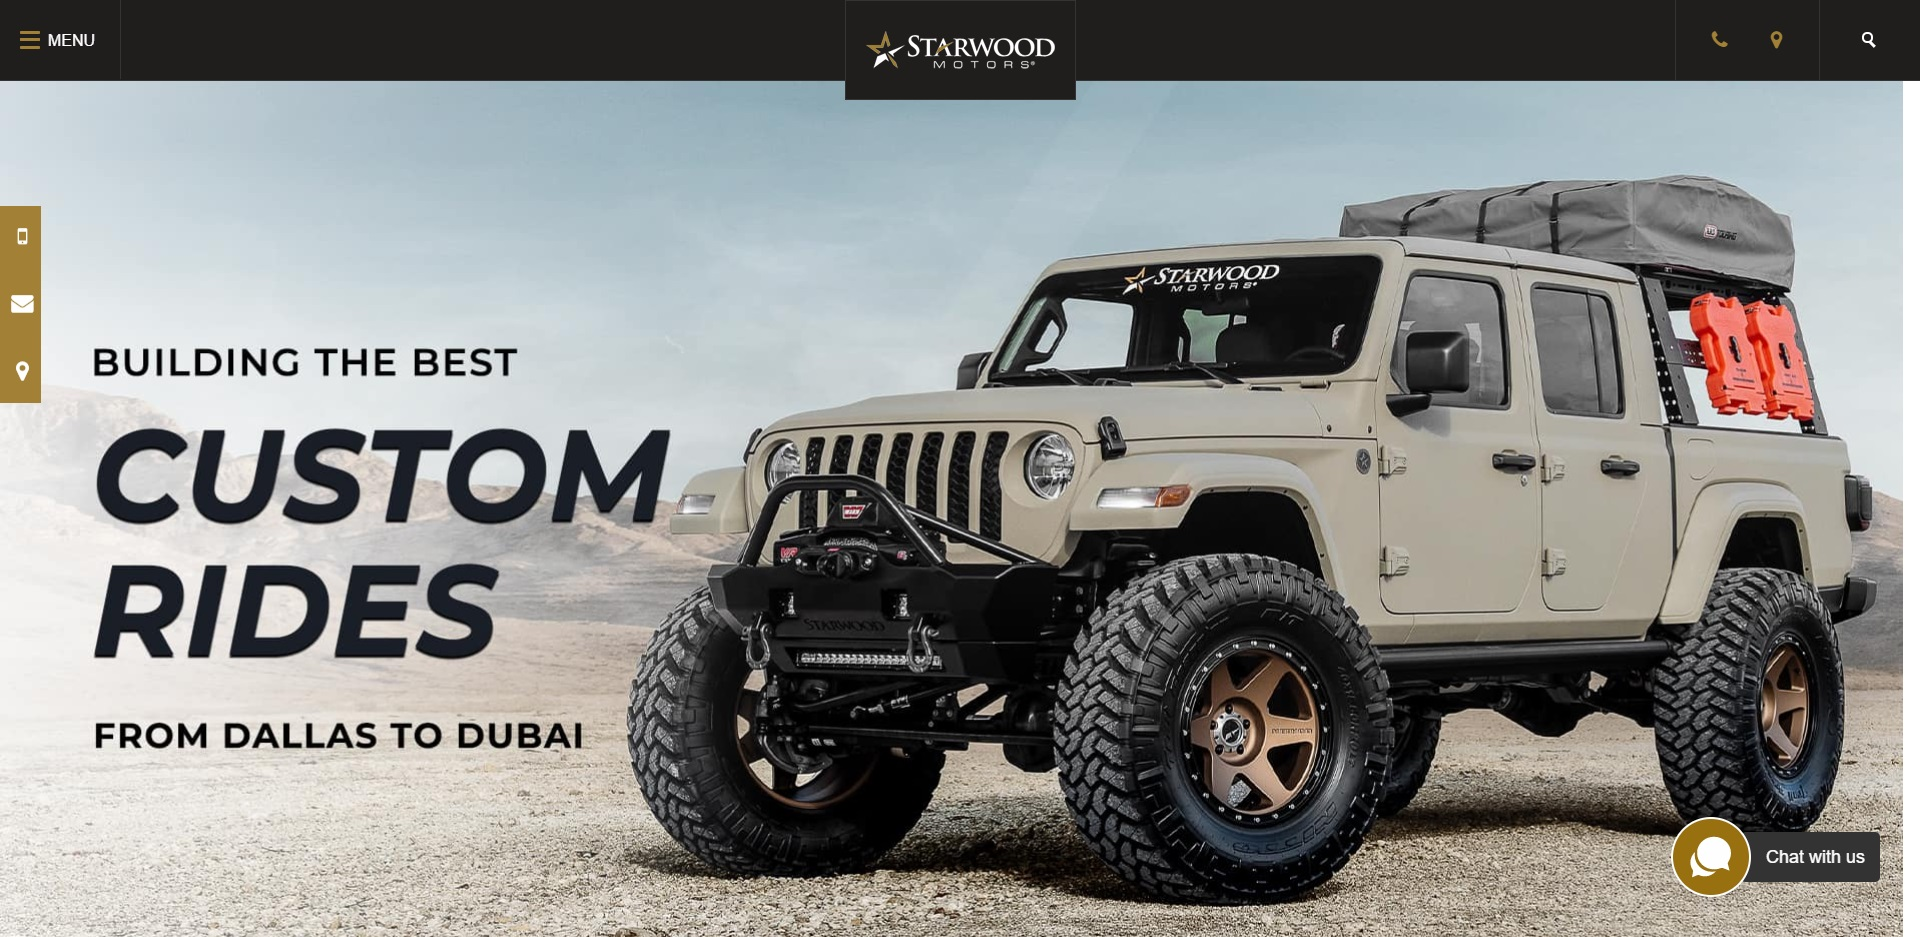 The Best Jeep Dealers in Dallas